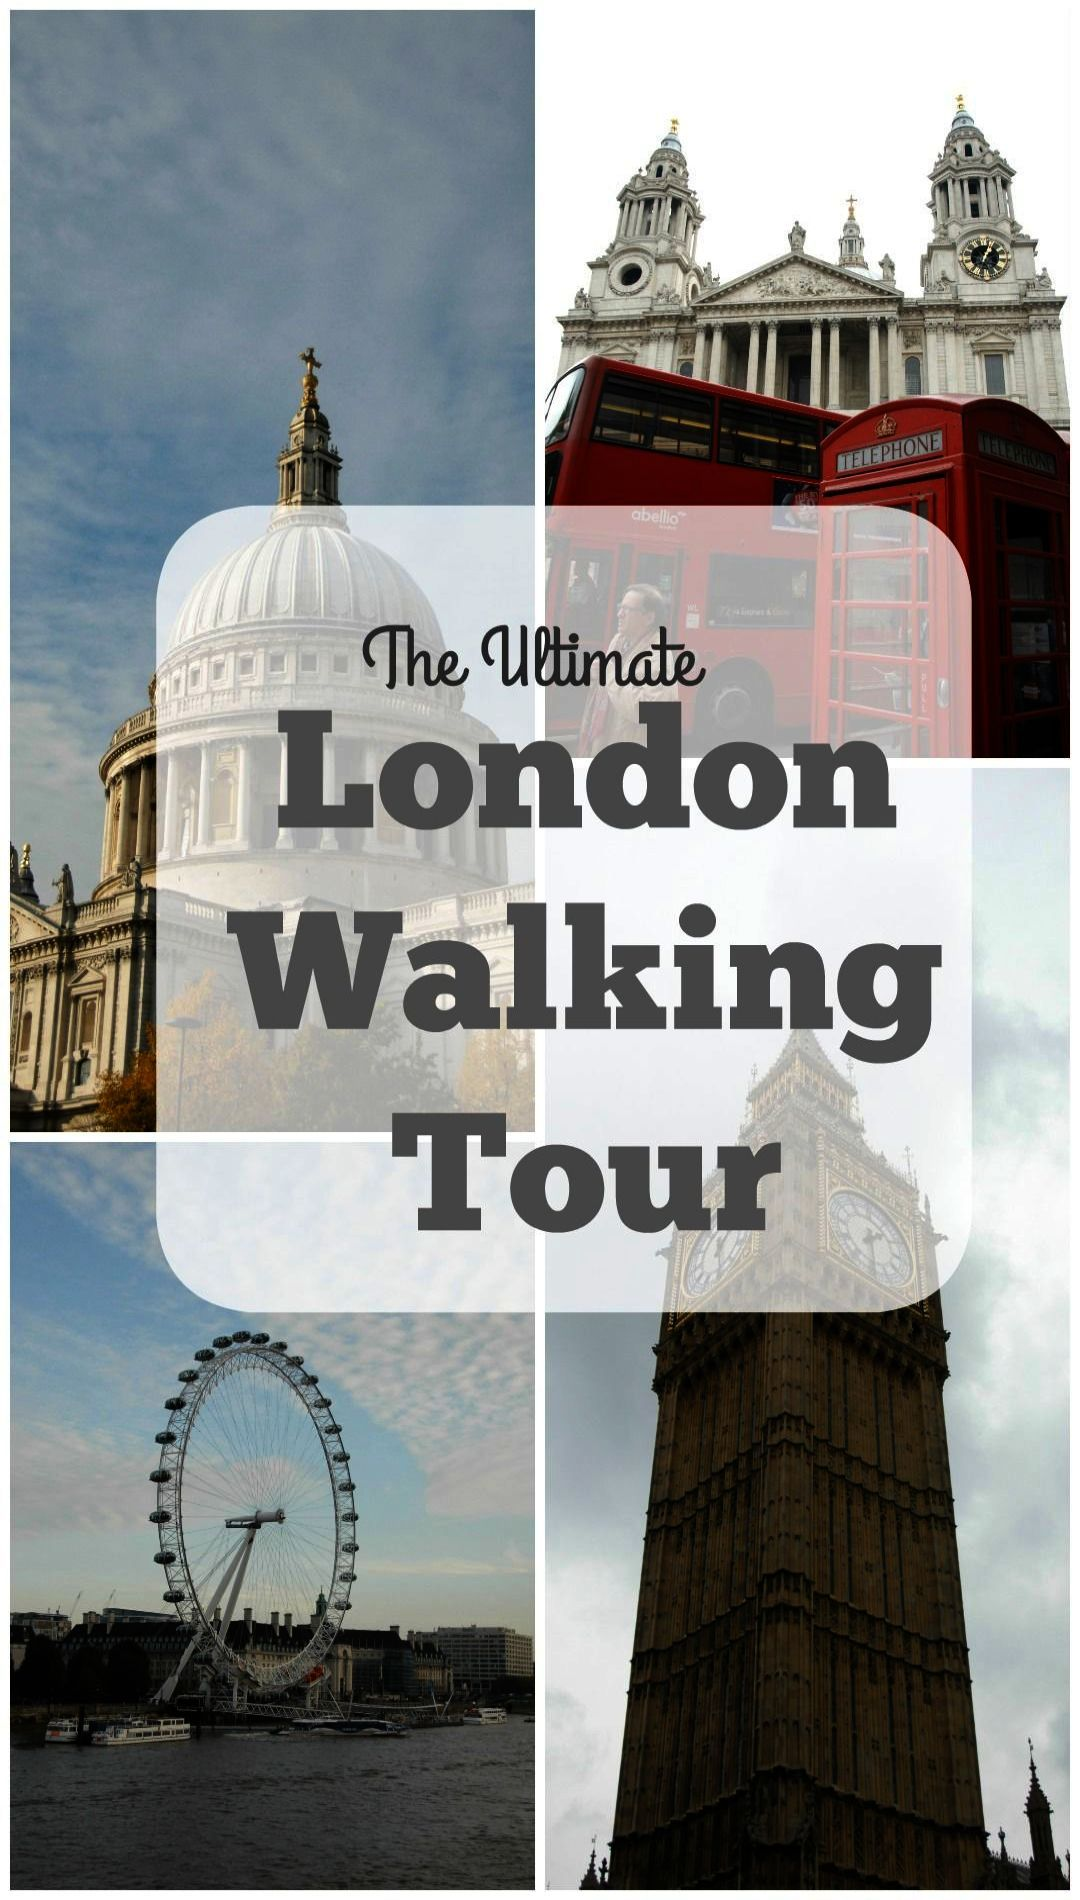 Sat 4th feb 2017 – 10am – 5pm – 'queer tours of london' tour guide.